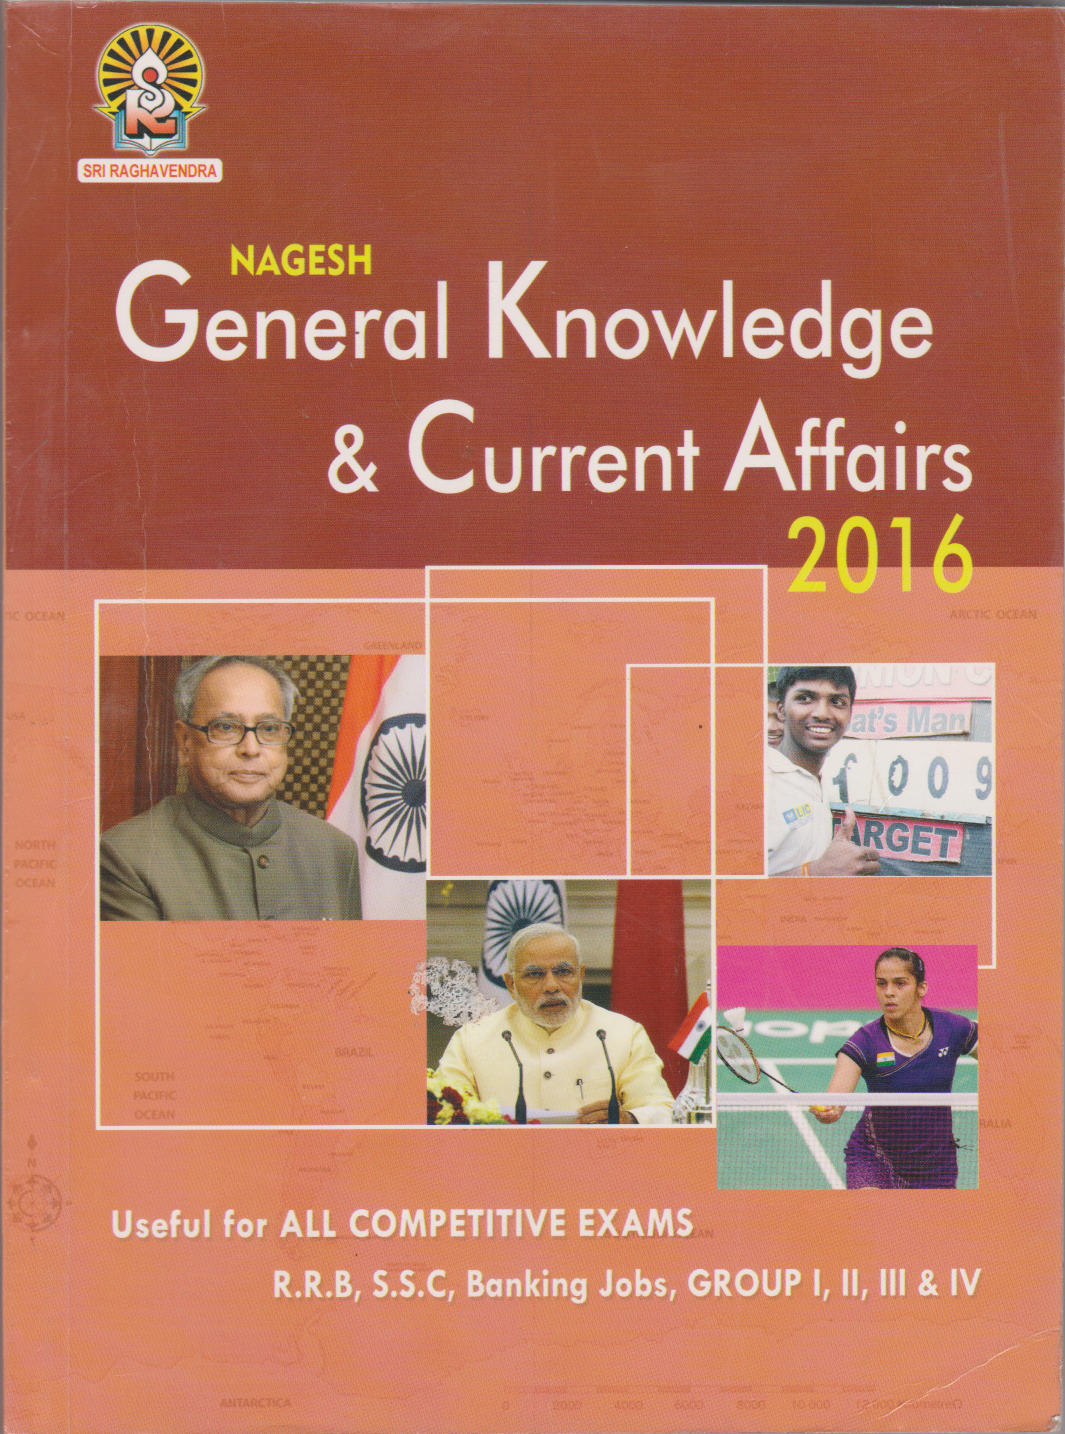 General Knowledge & Current Affairs 2016 by Nagesh